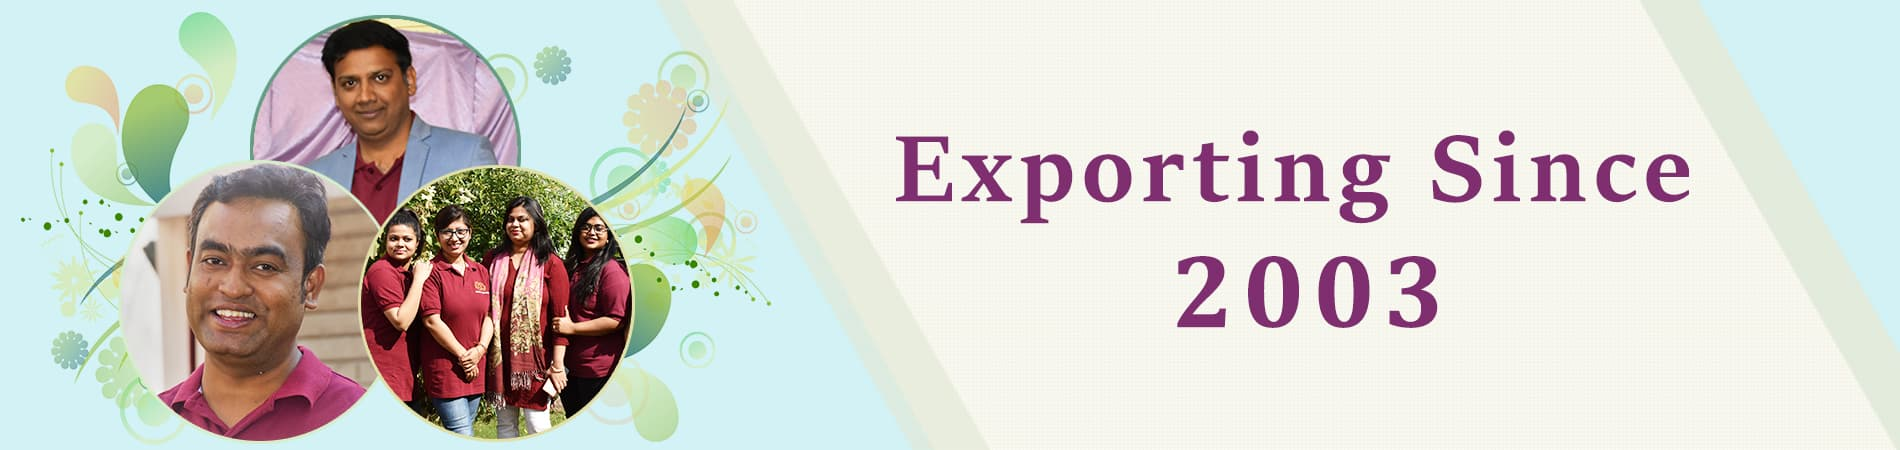 1583133216_About_Us_Exporting_Since_2003.jpg